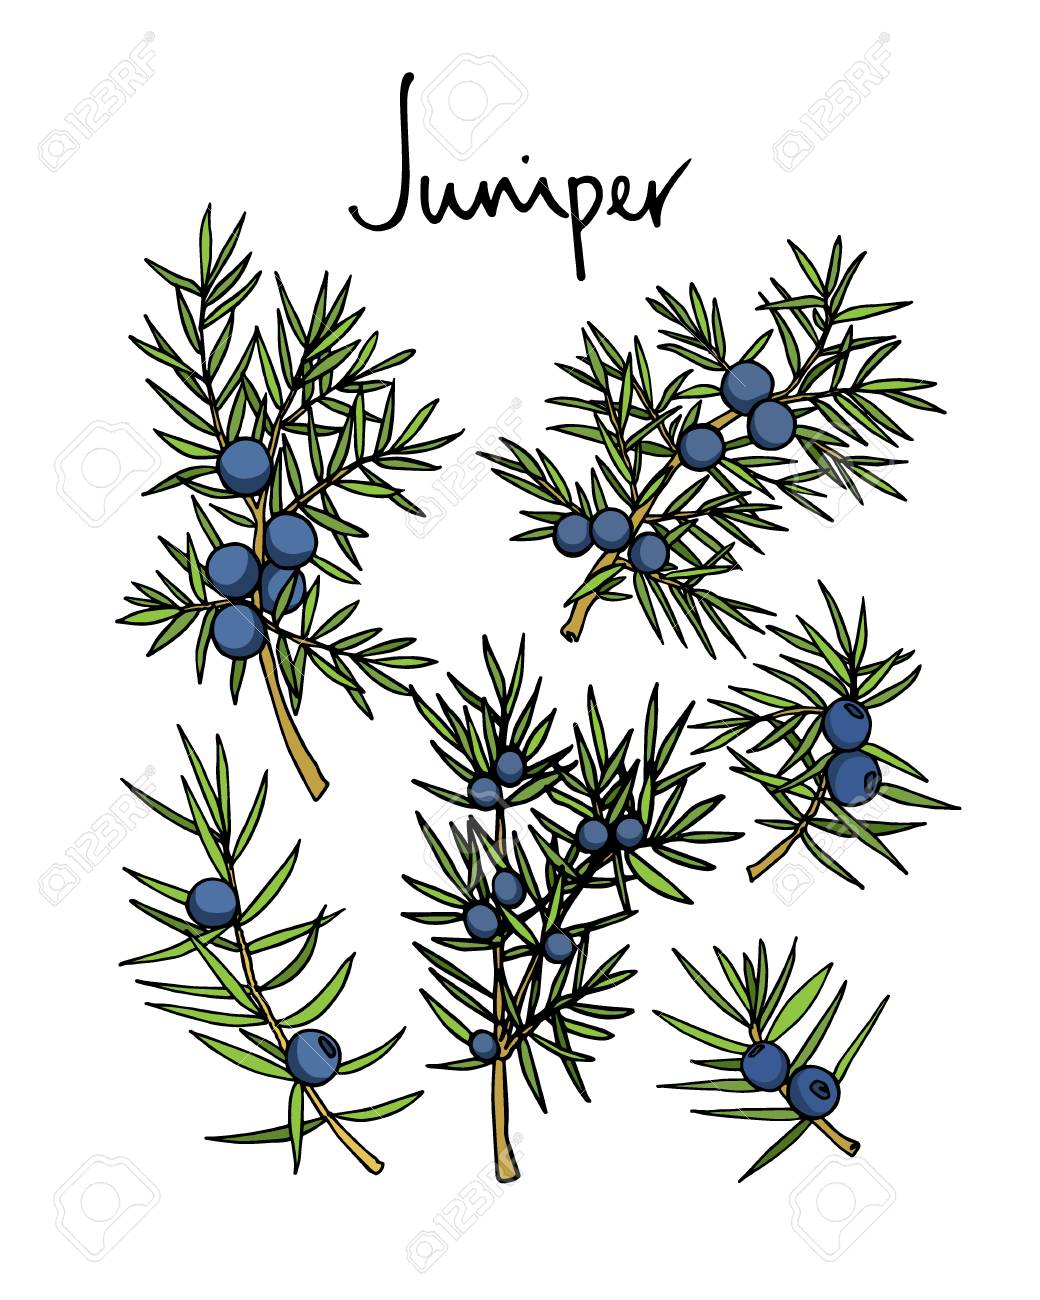 1040x1300 Vector Card With Hand Drawn Juniper Twigs. Beautiful Floral Design